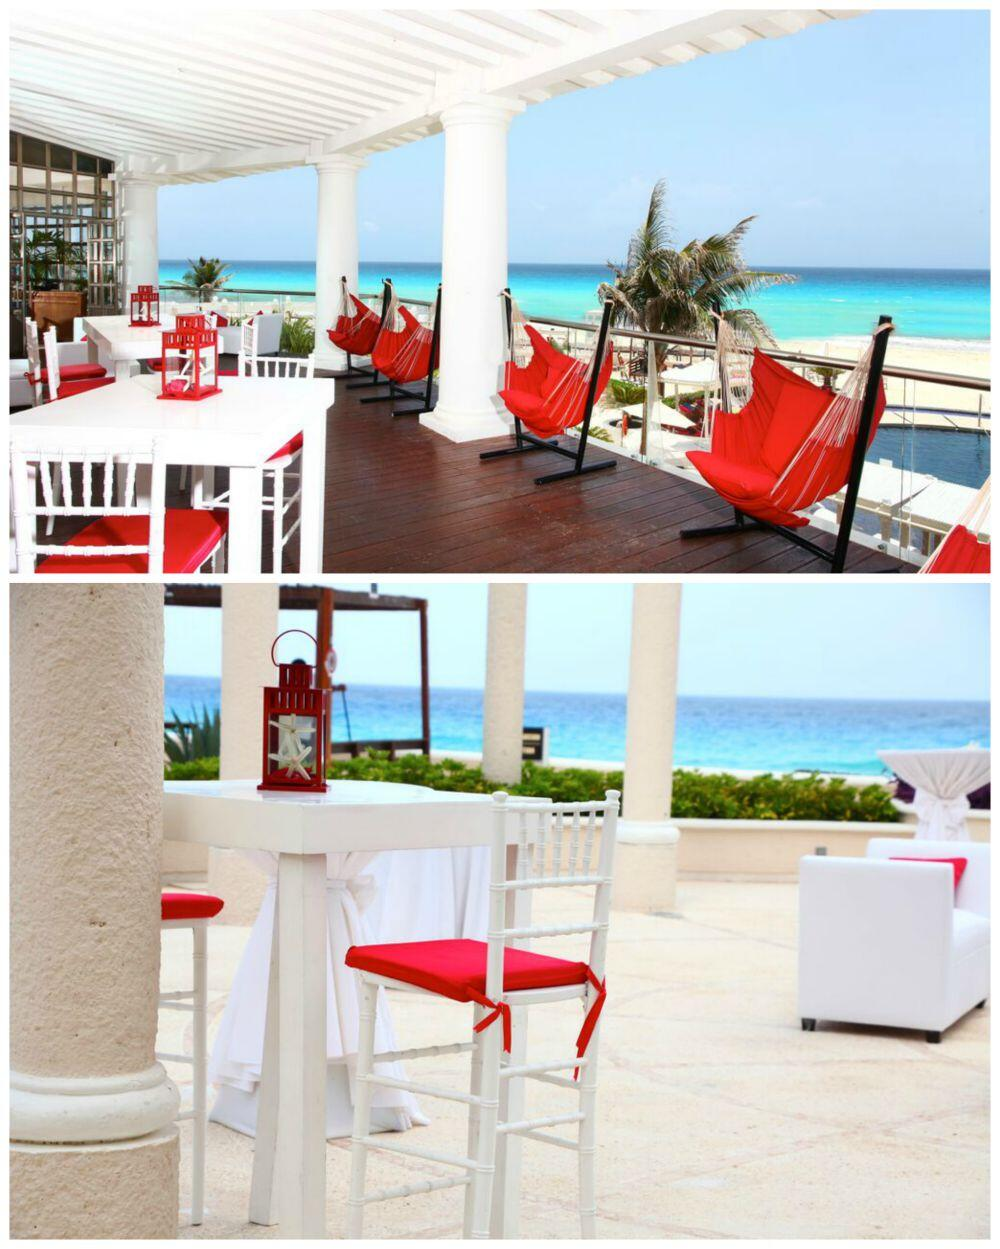 Cancun events with an ocean view